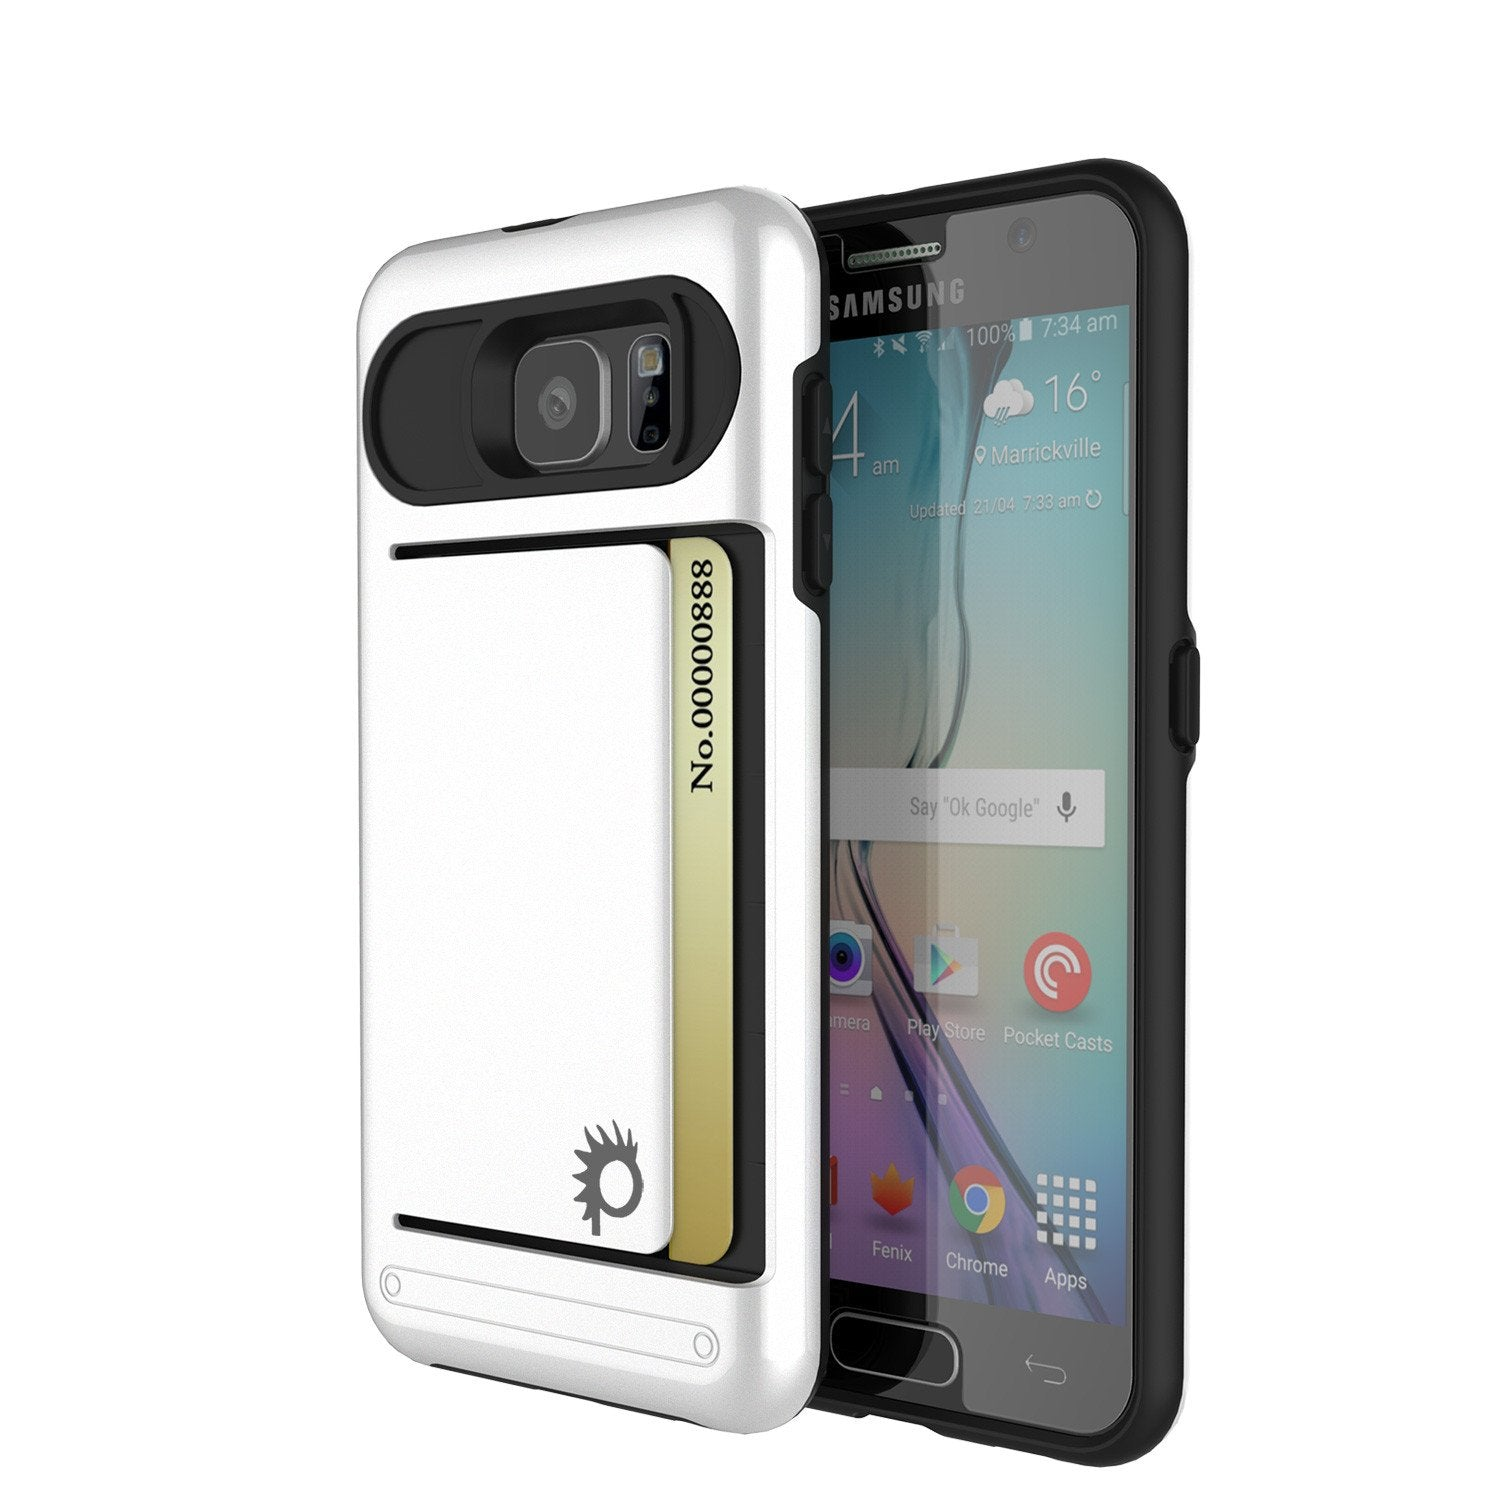 Galaxy s6 Case PunkCase CLUTCH White Series Slim Armor Soft Cover Case w/ Tempered Glass